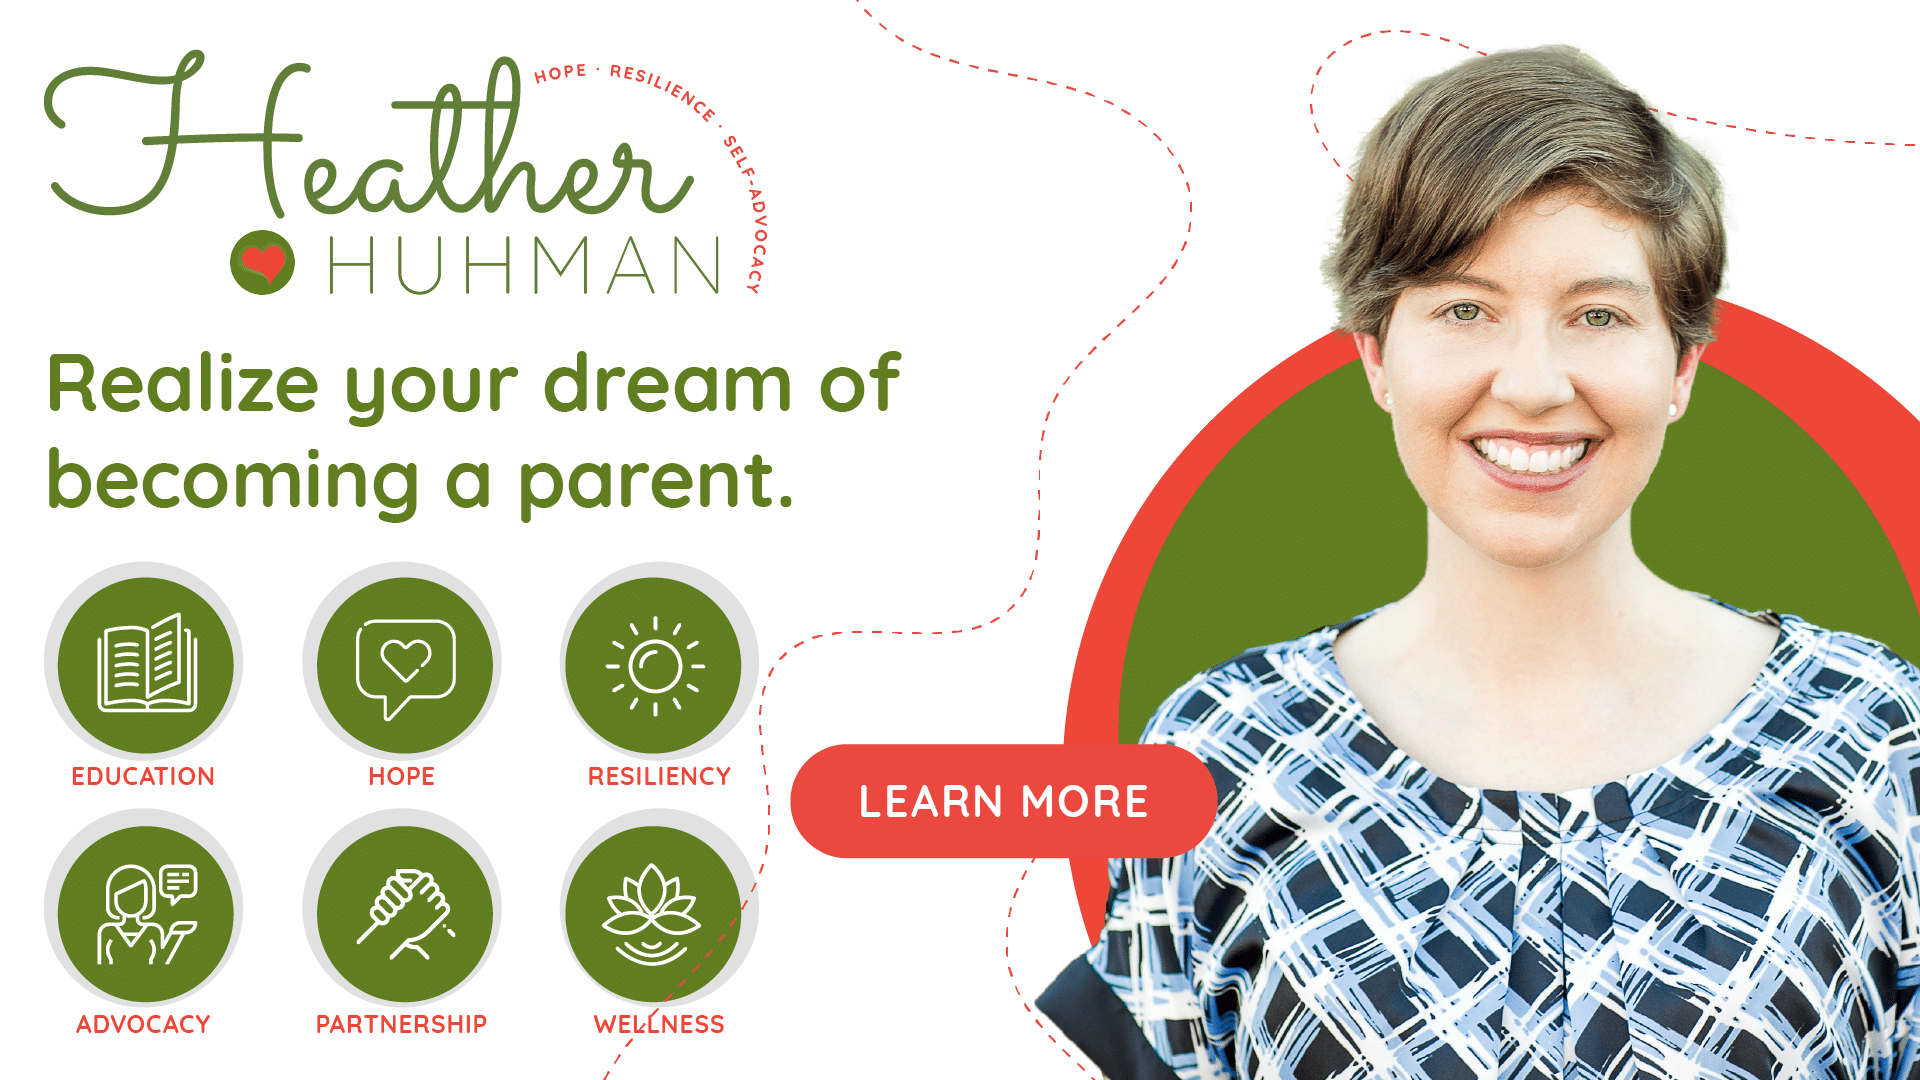 Infertility Coaching with Heather Huhman